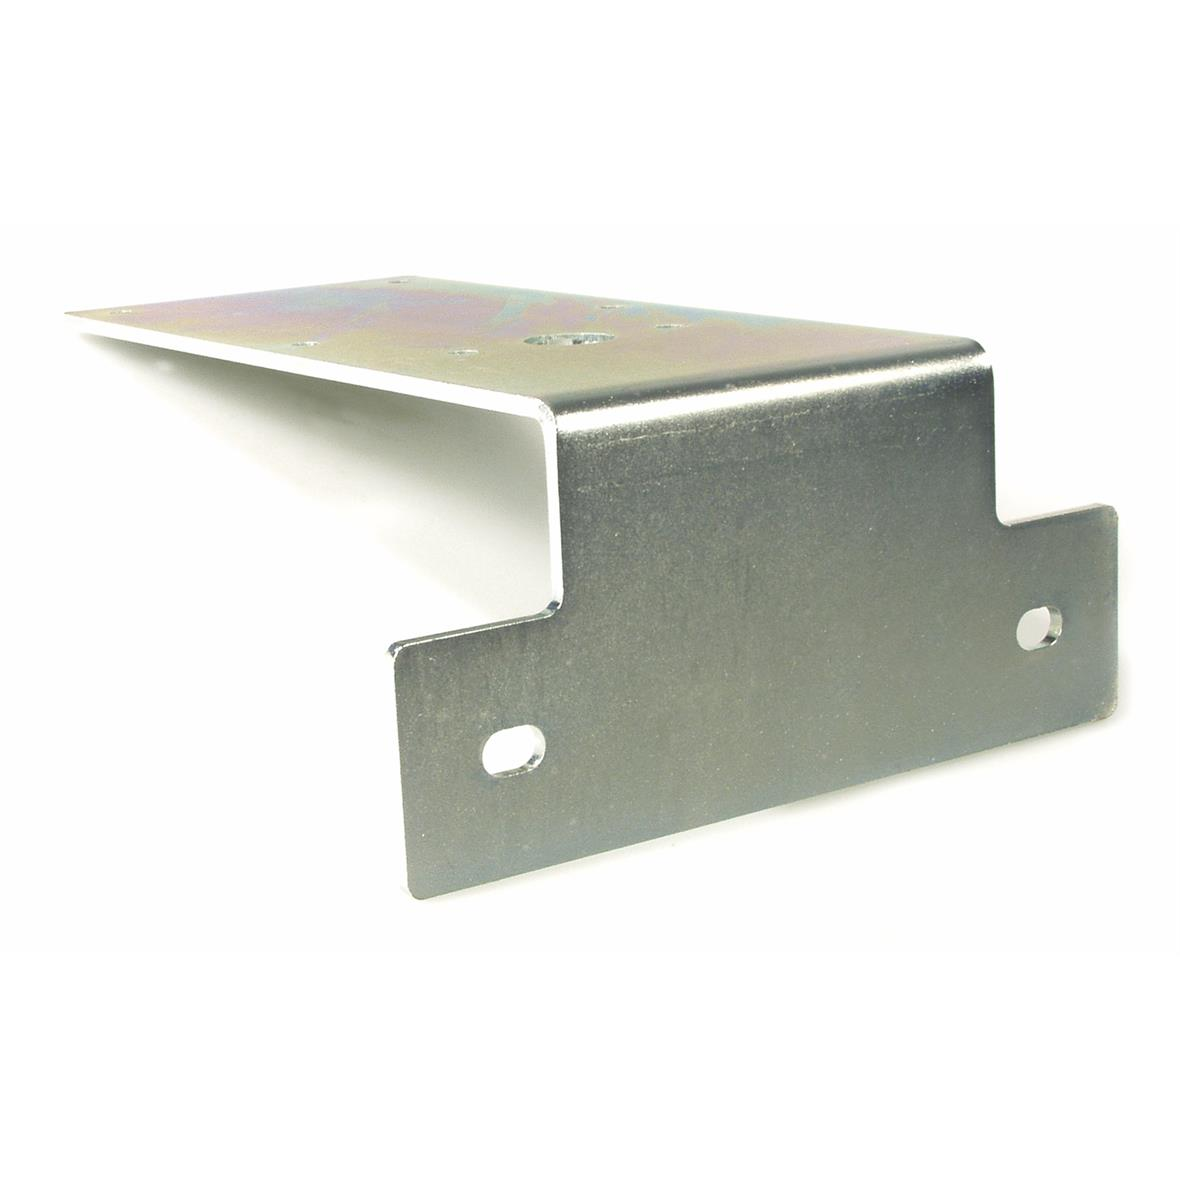 Product Image for 'Number plate holder STOItaljet Dragster 50-180Title'